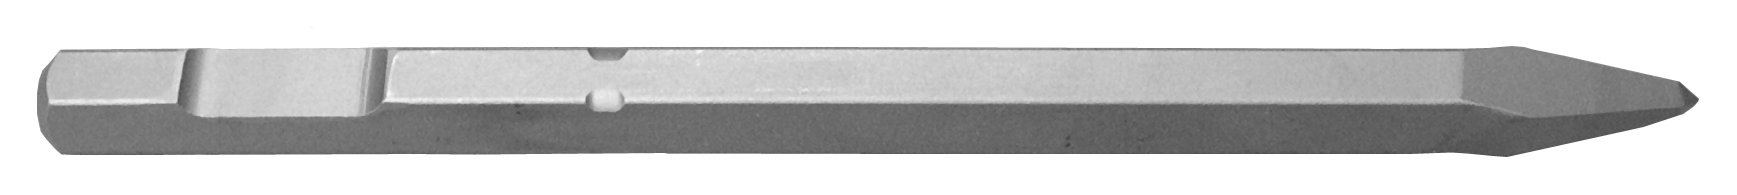 Champion Chisel, 3/4-Inch Hex Demo Shank, 20-Inch Long Moil or Bull Point